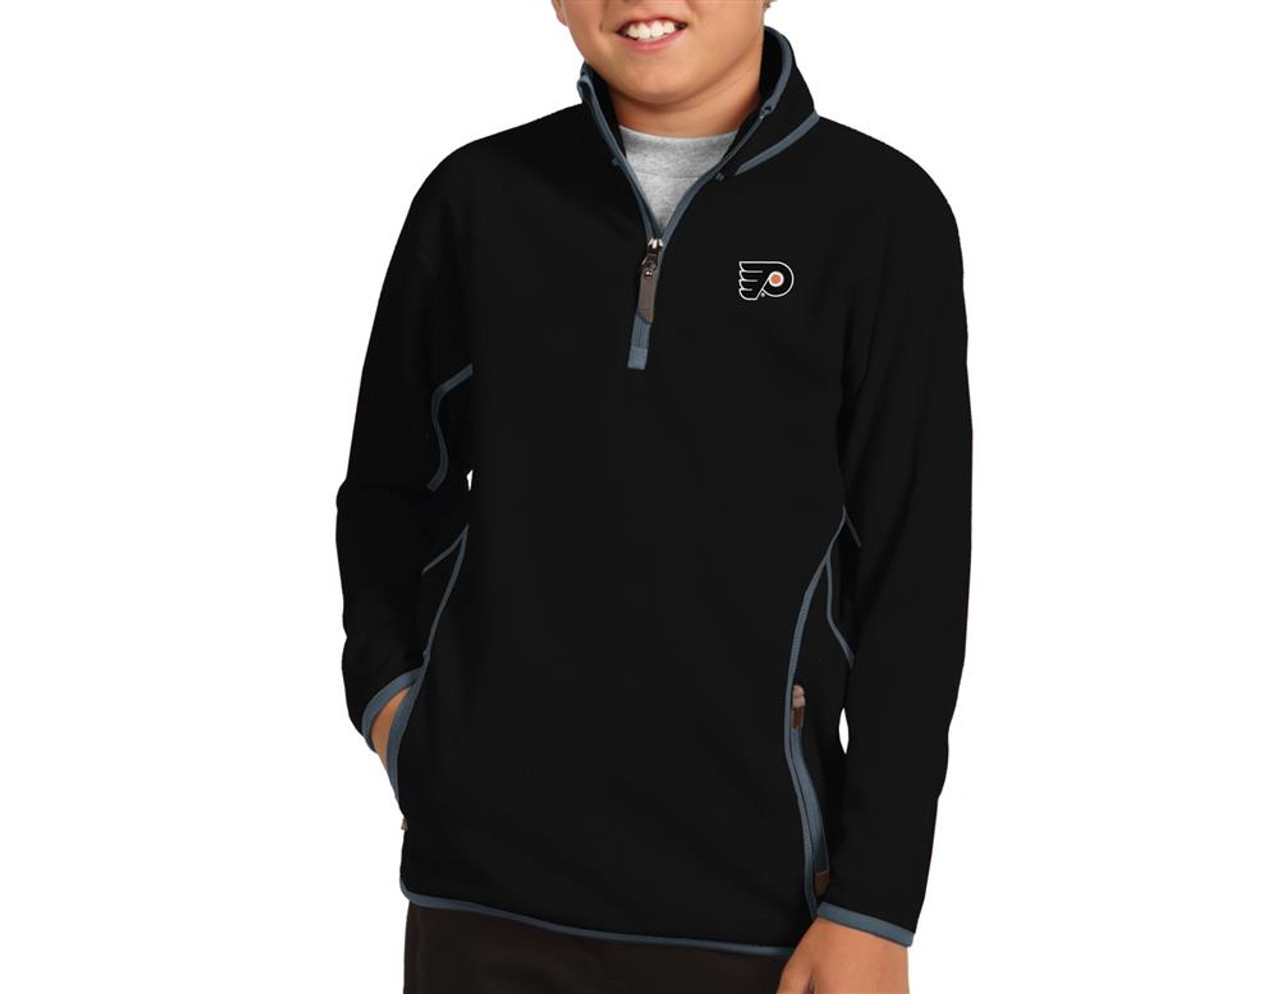 Anaheim Ducks Youth Pullover Jacket